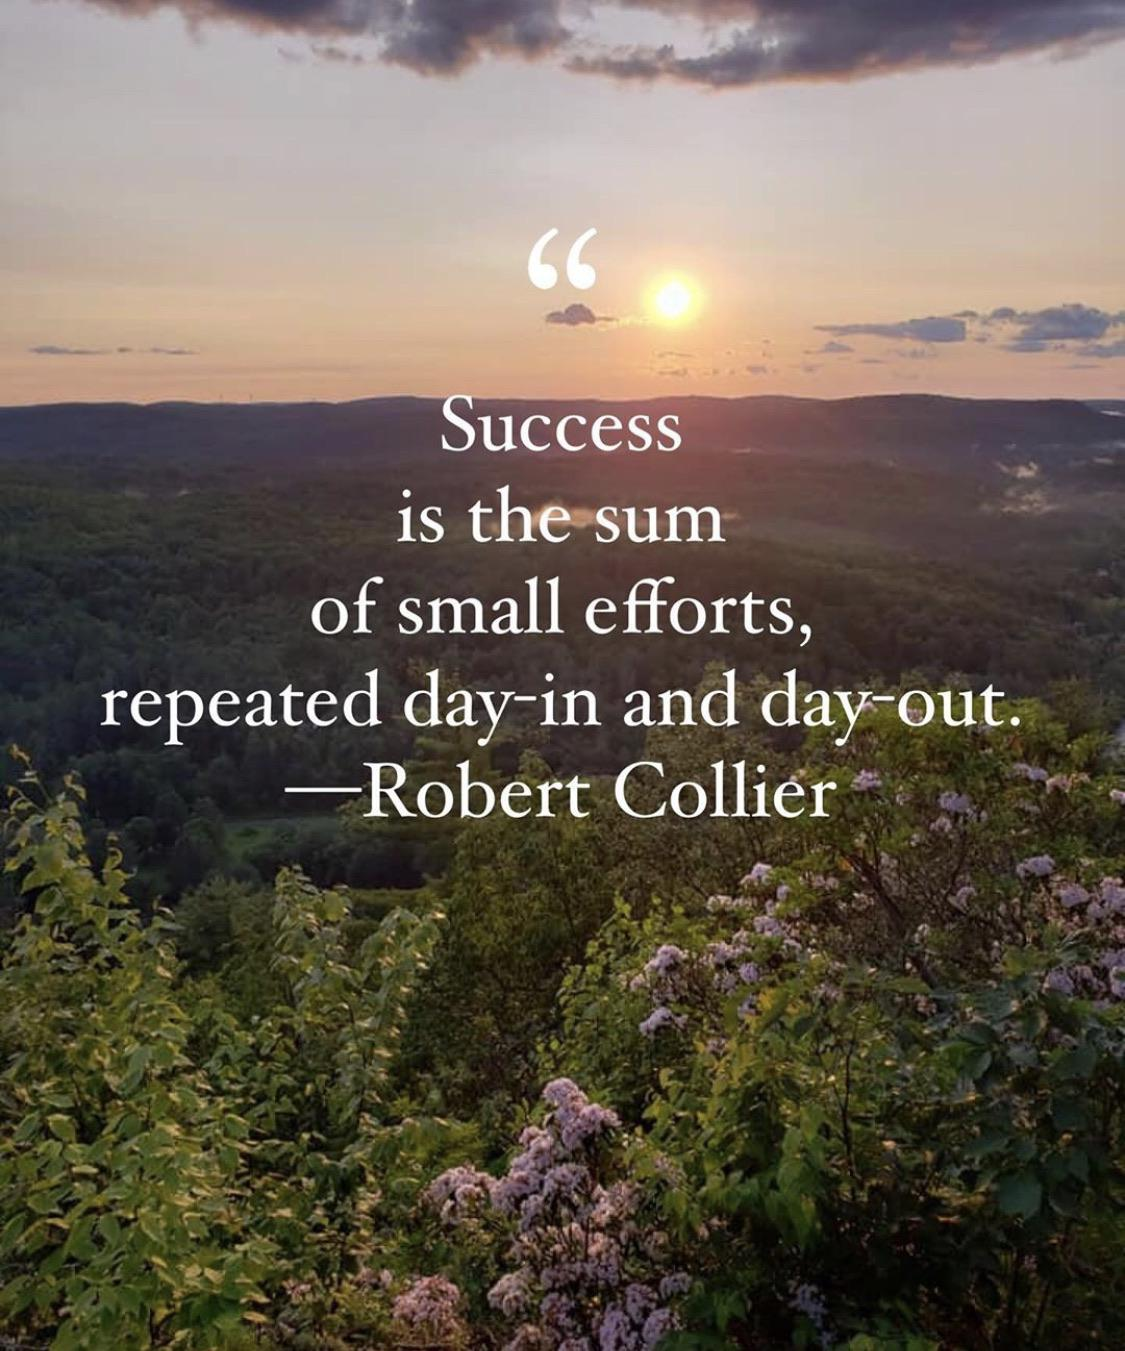 [Image] Success is the sum of small efforts… Robert Collier